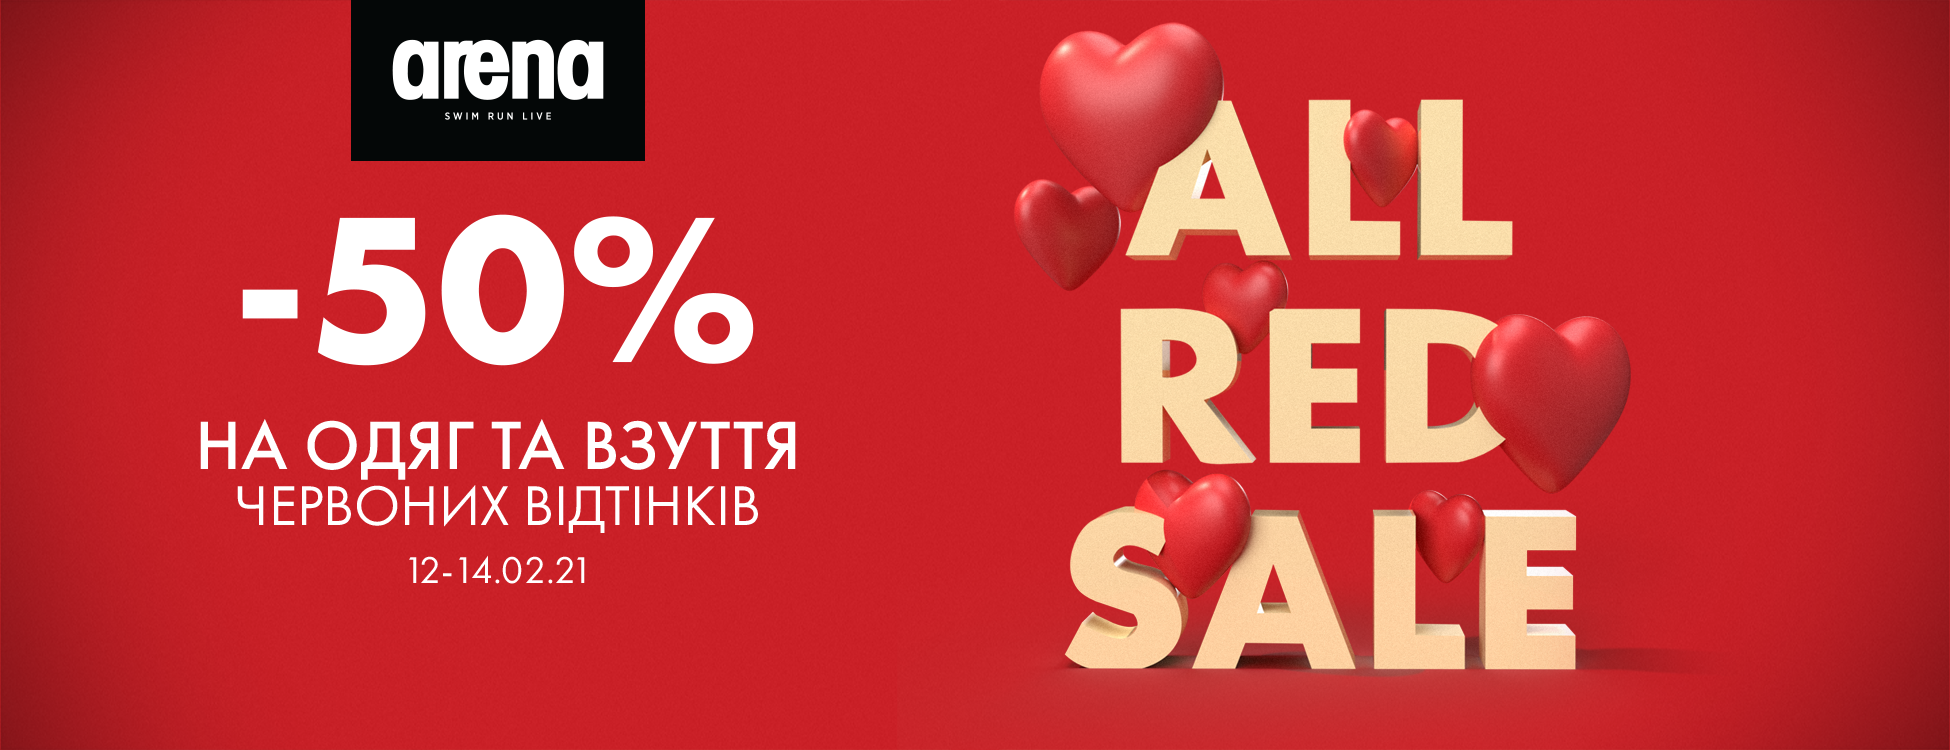 ALL RED SALE 